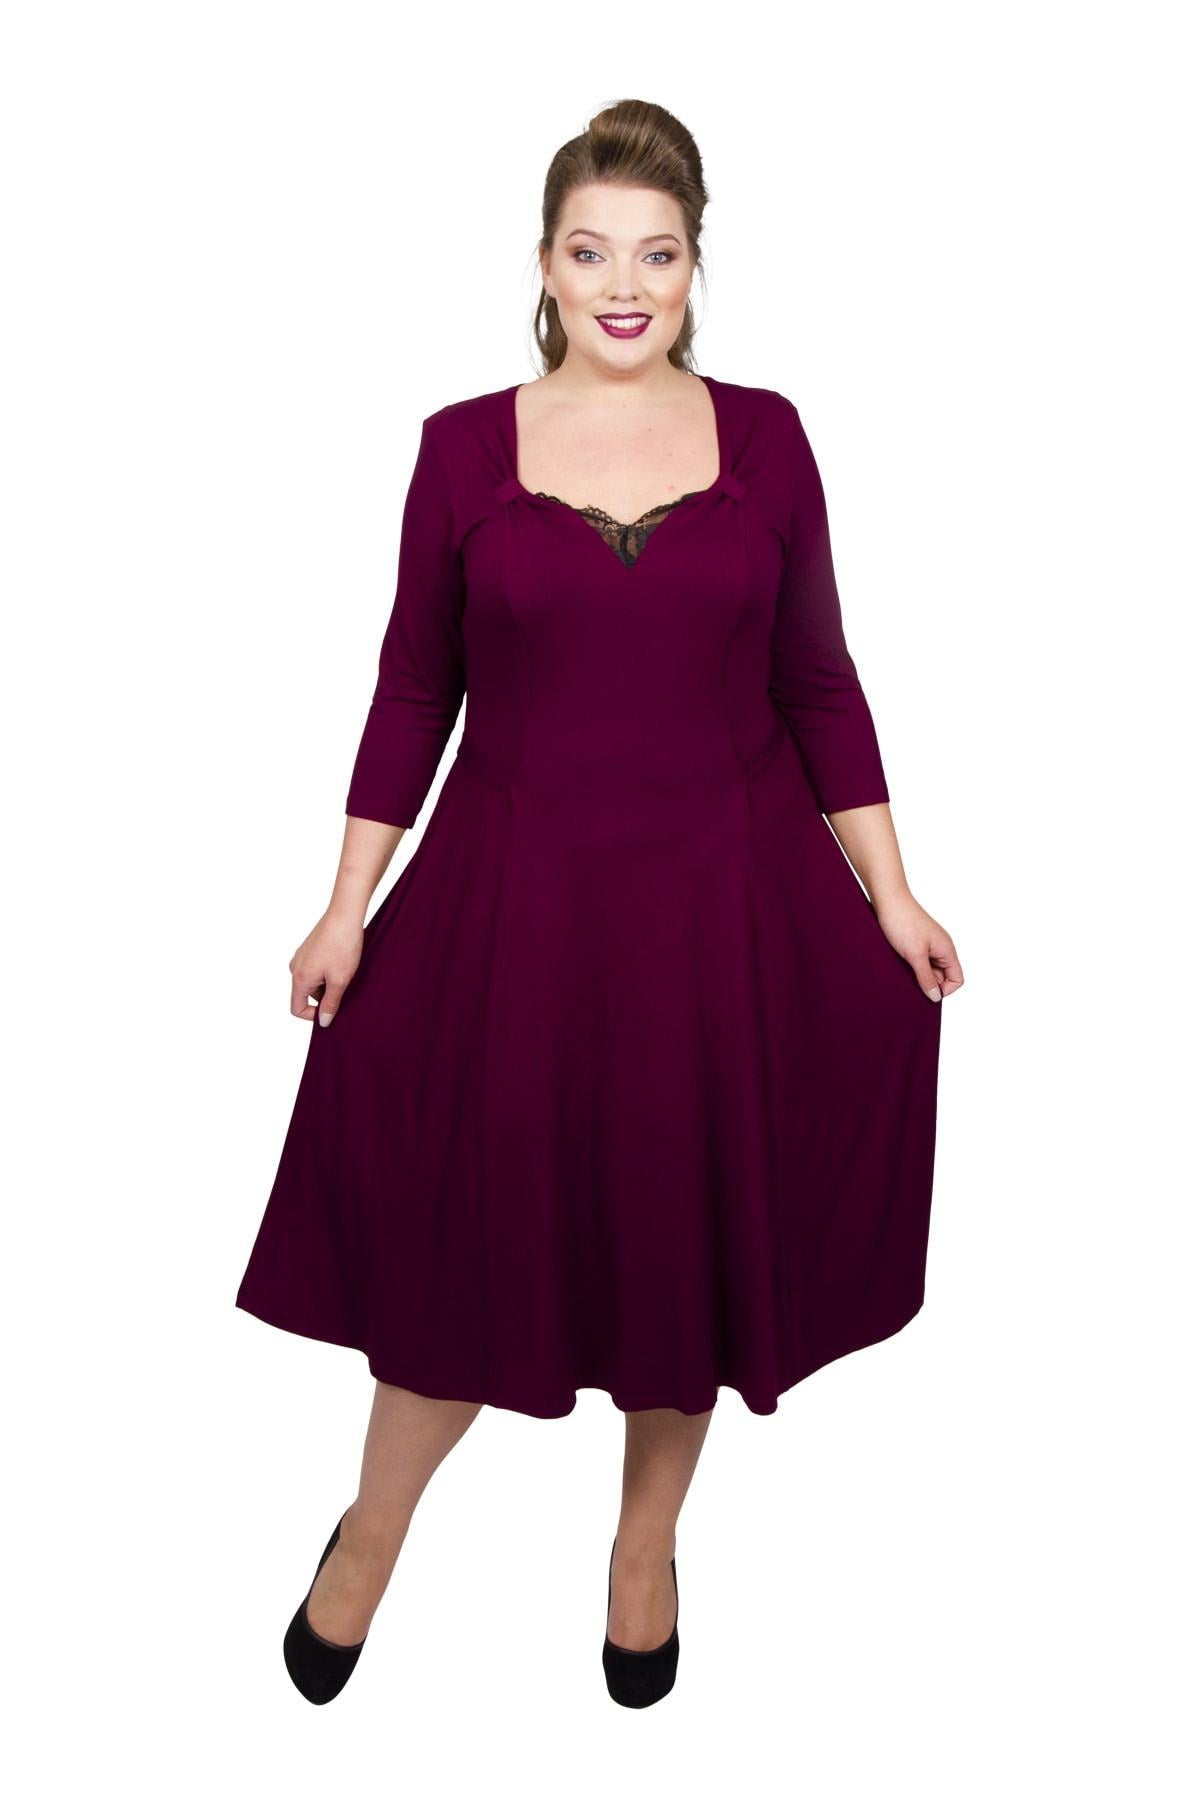 1940s Fashion Advice for Short Women Lace Sweetheart Tab 40s Dress - Burgundy  16 £55.00 AT vintagedancer.com